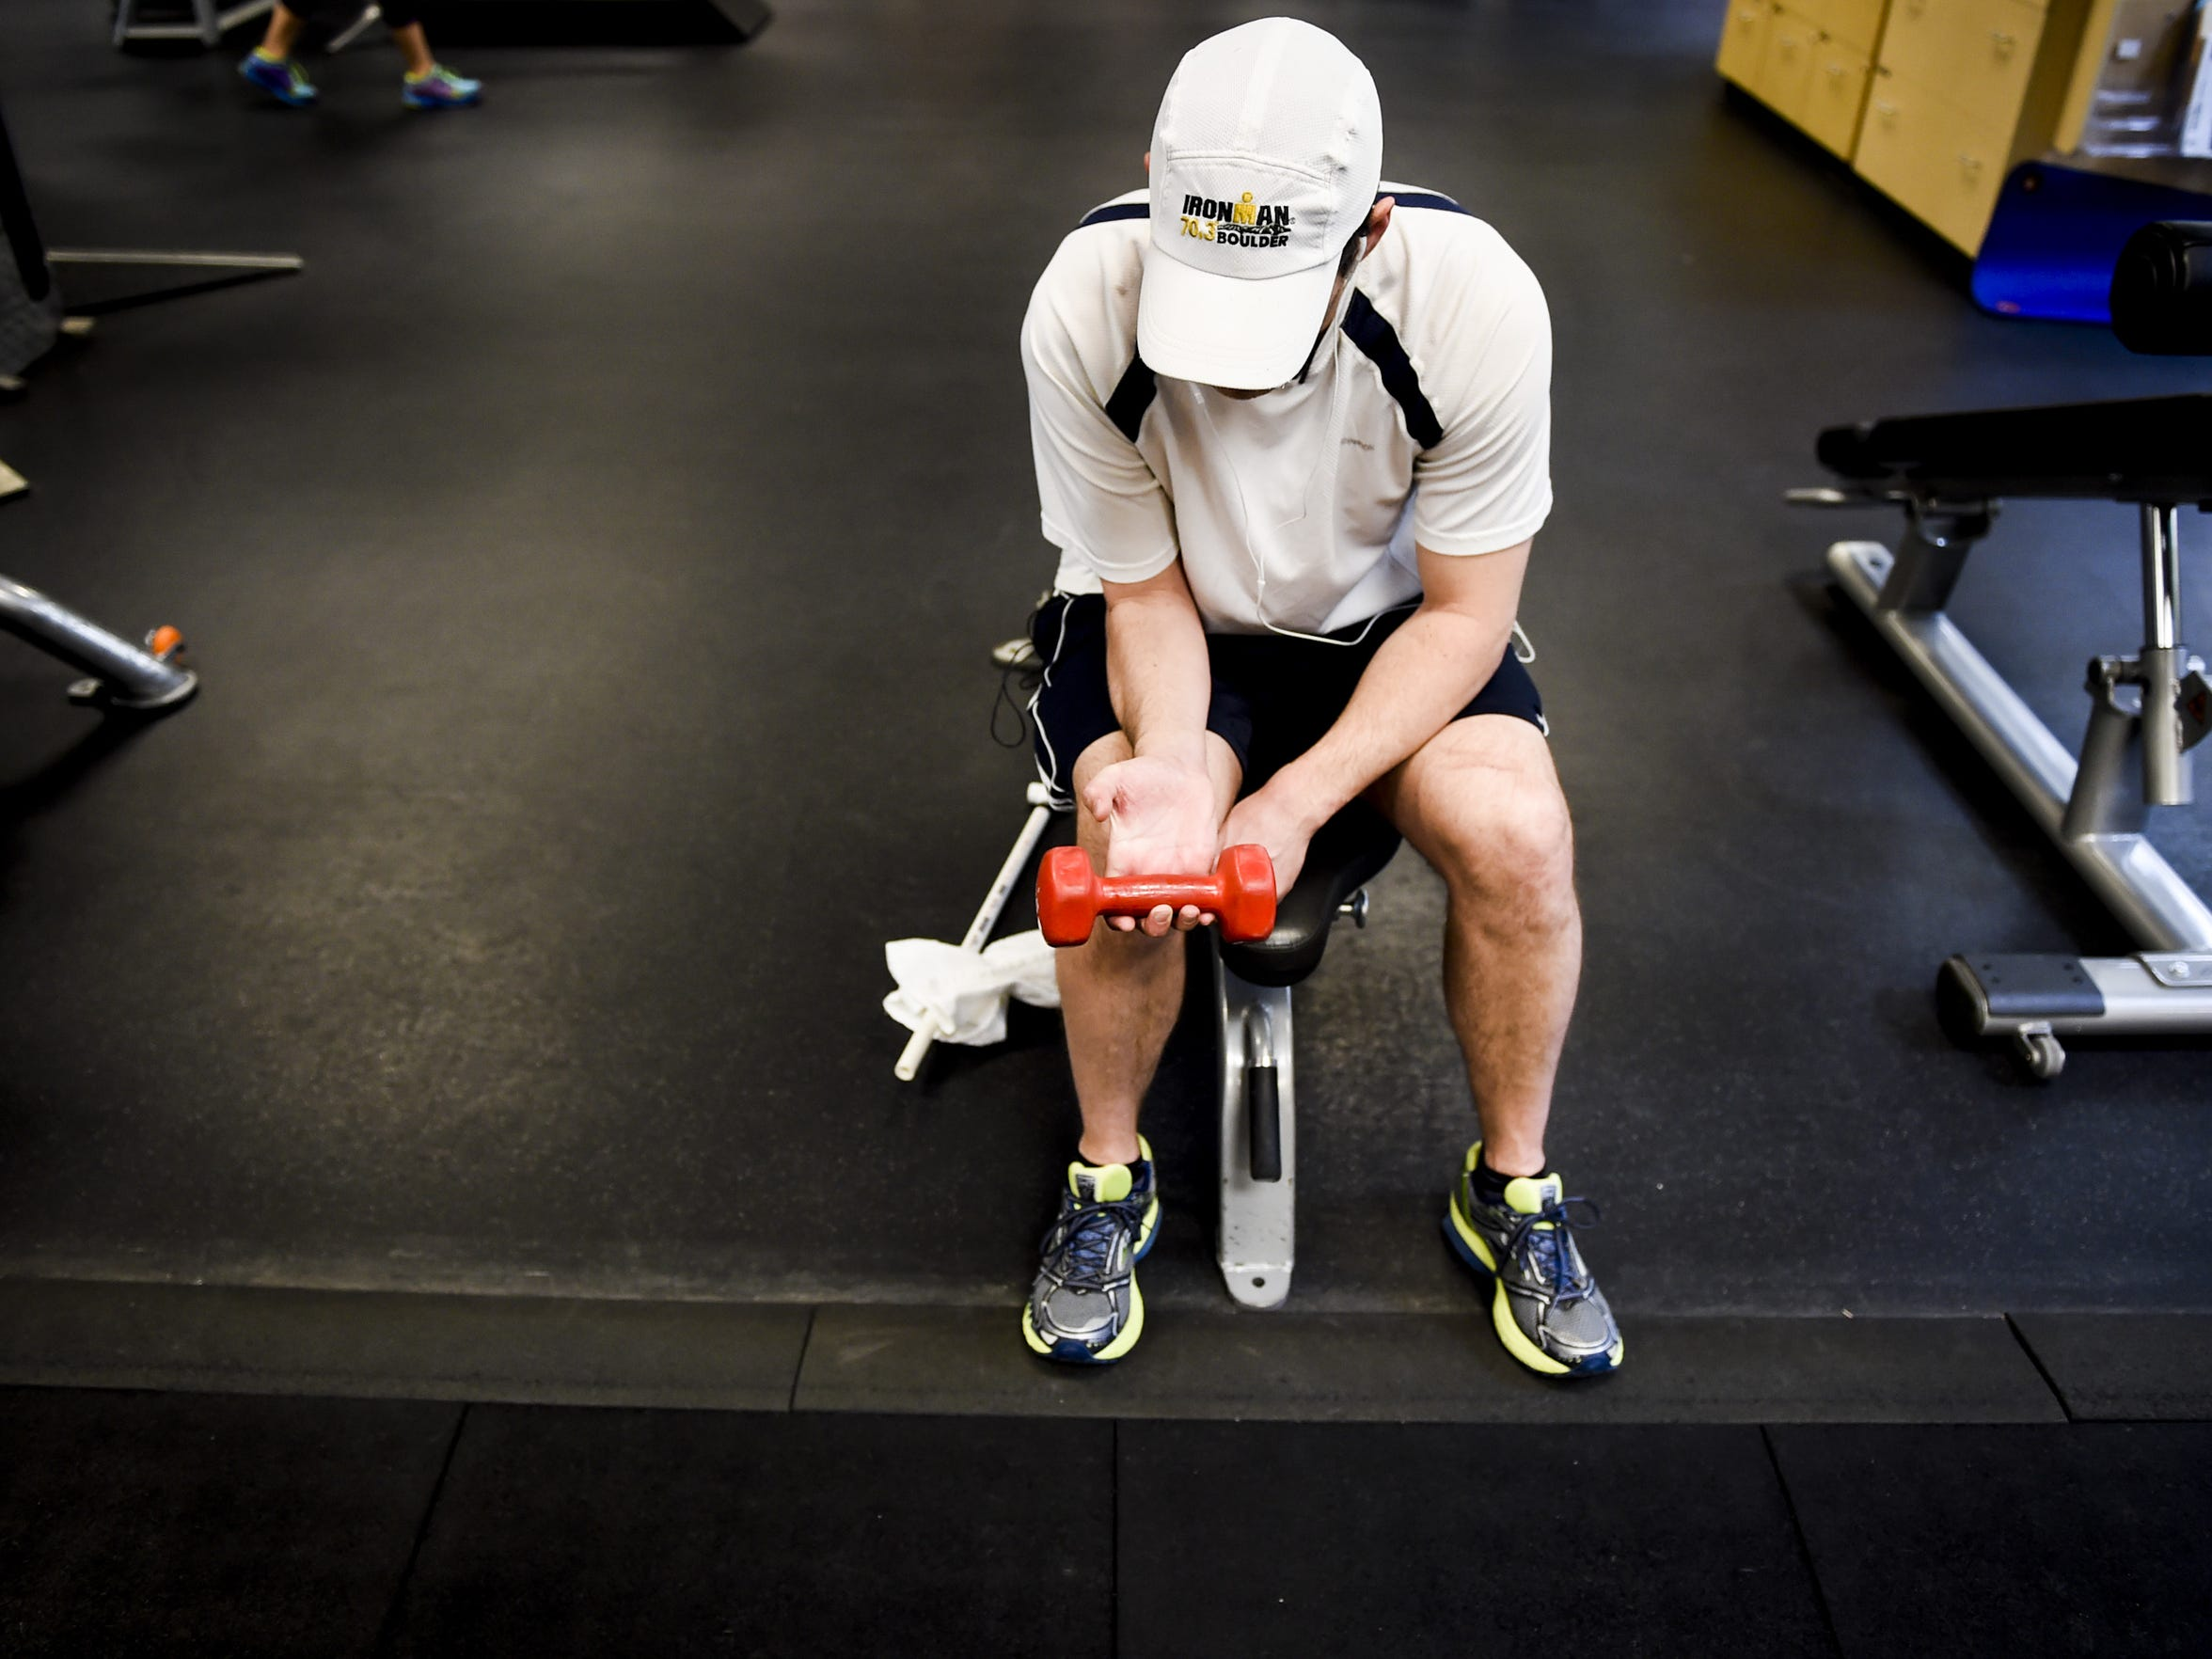 Holding a 5-pound weight, Jeff Wicks sits stretching